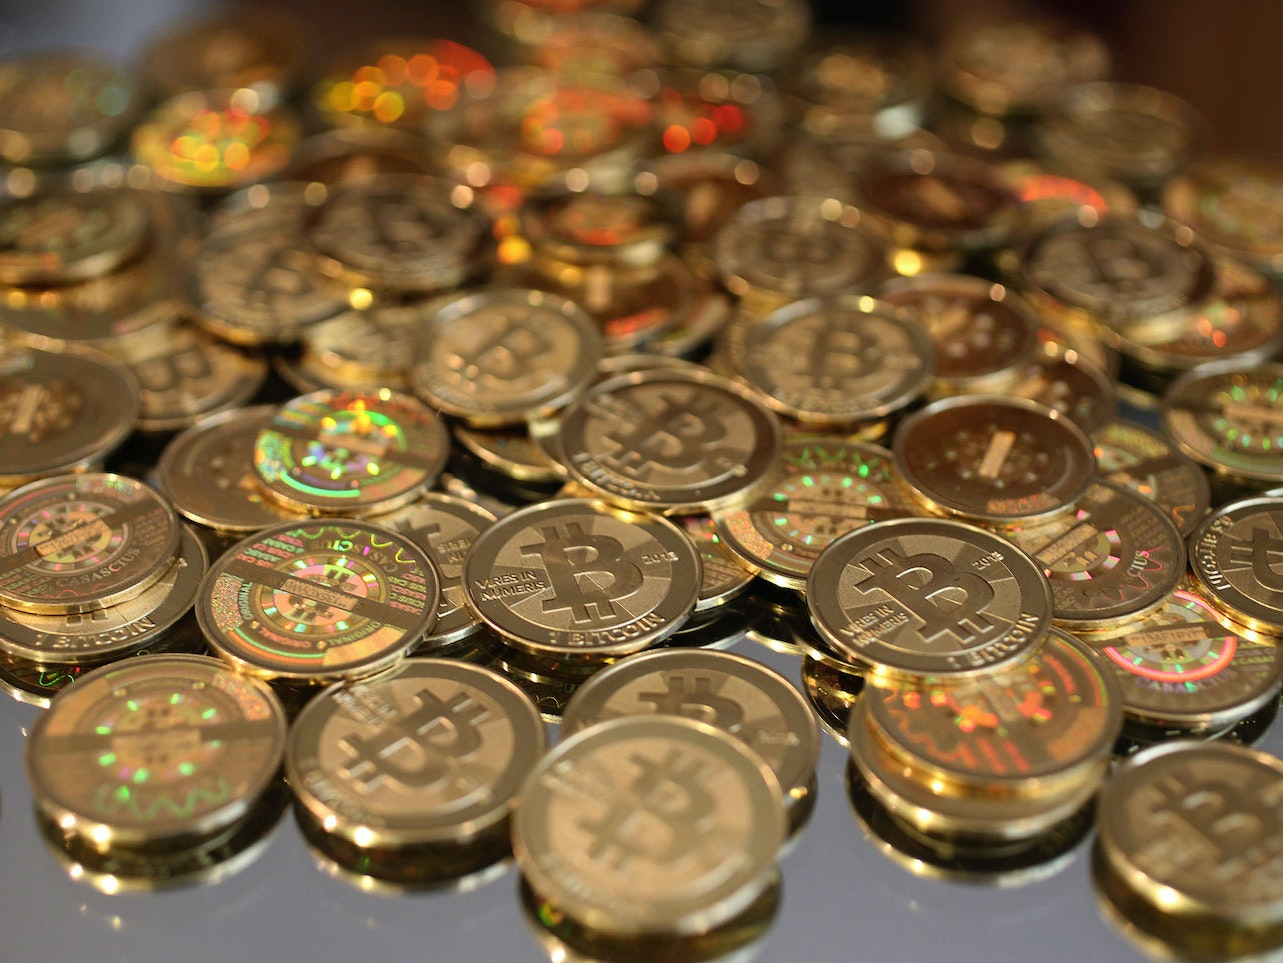 An Ex-DEA Agent Embezzled More Than $700,000 in Bitcoin Investigating Silk Road